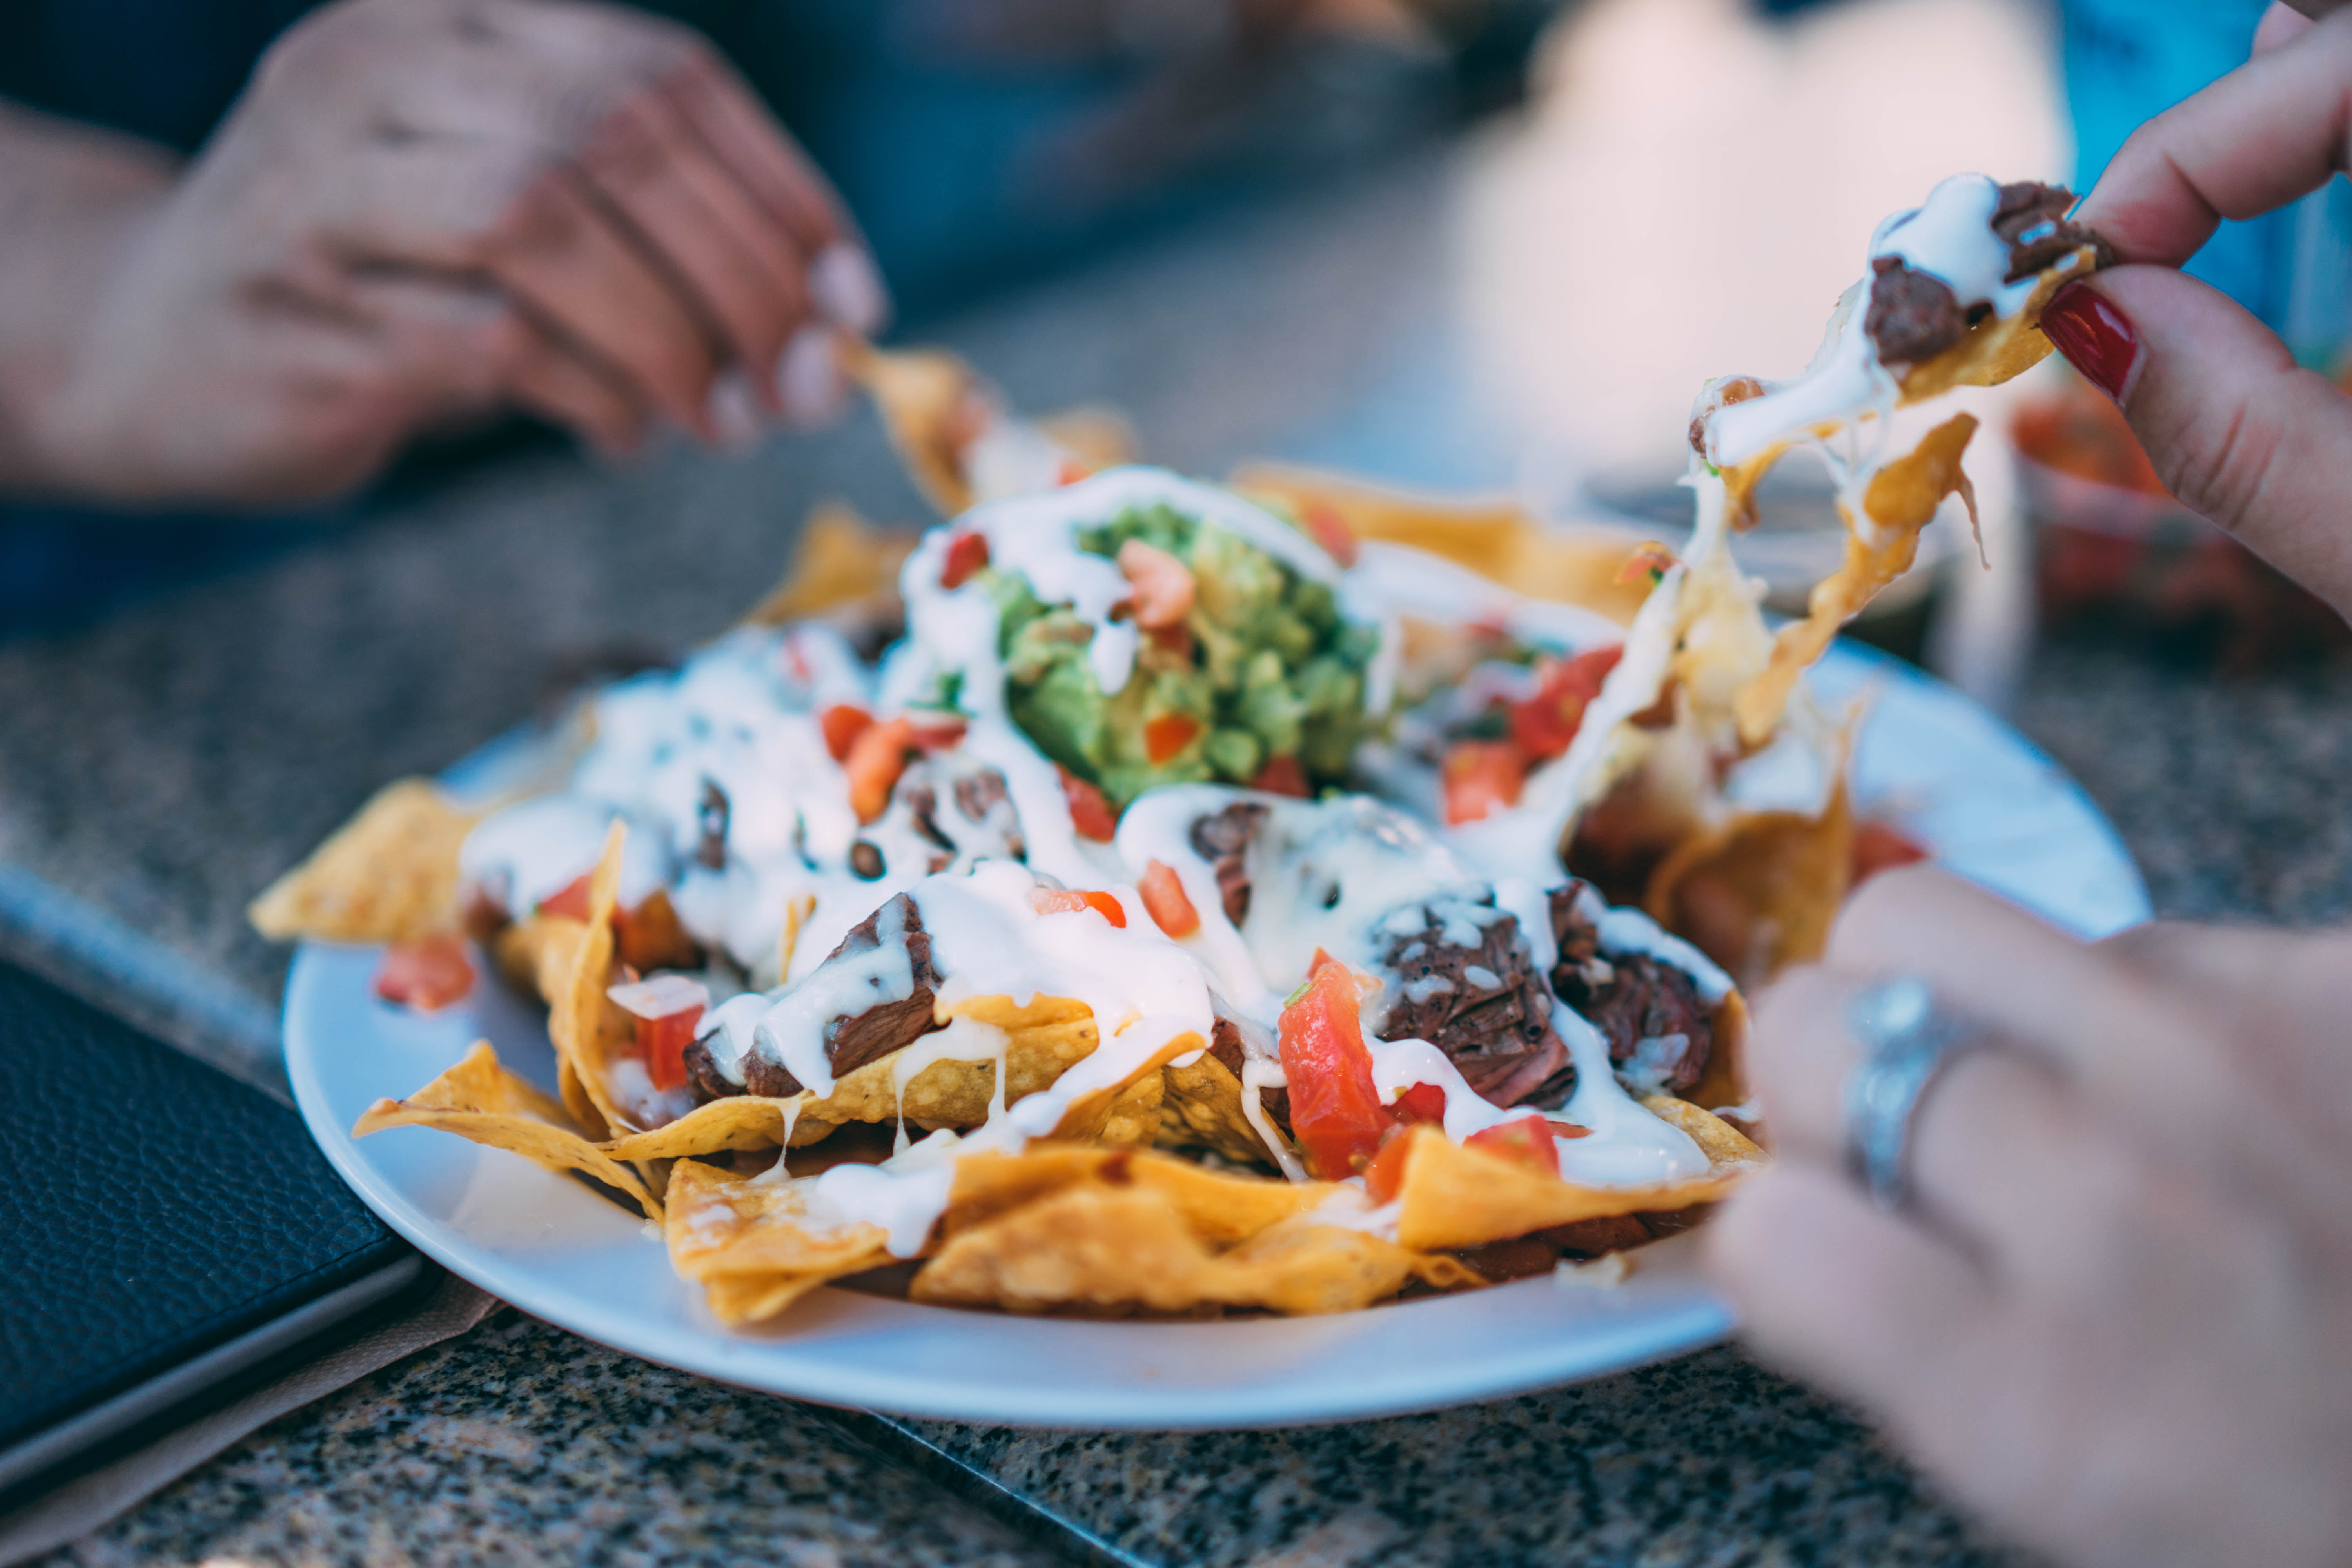 People sharing a plate of Mexican nachos with vegetables and meat